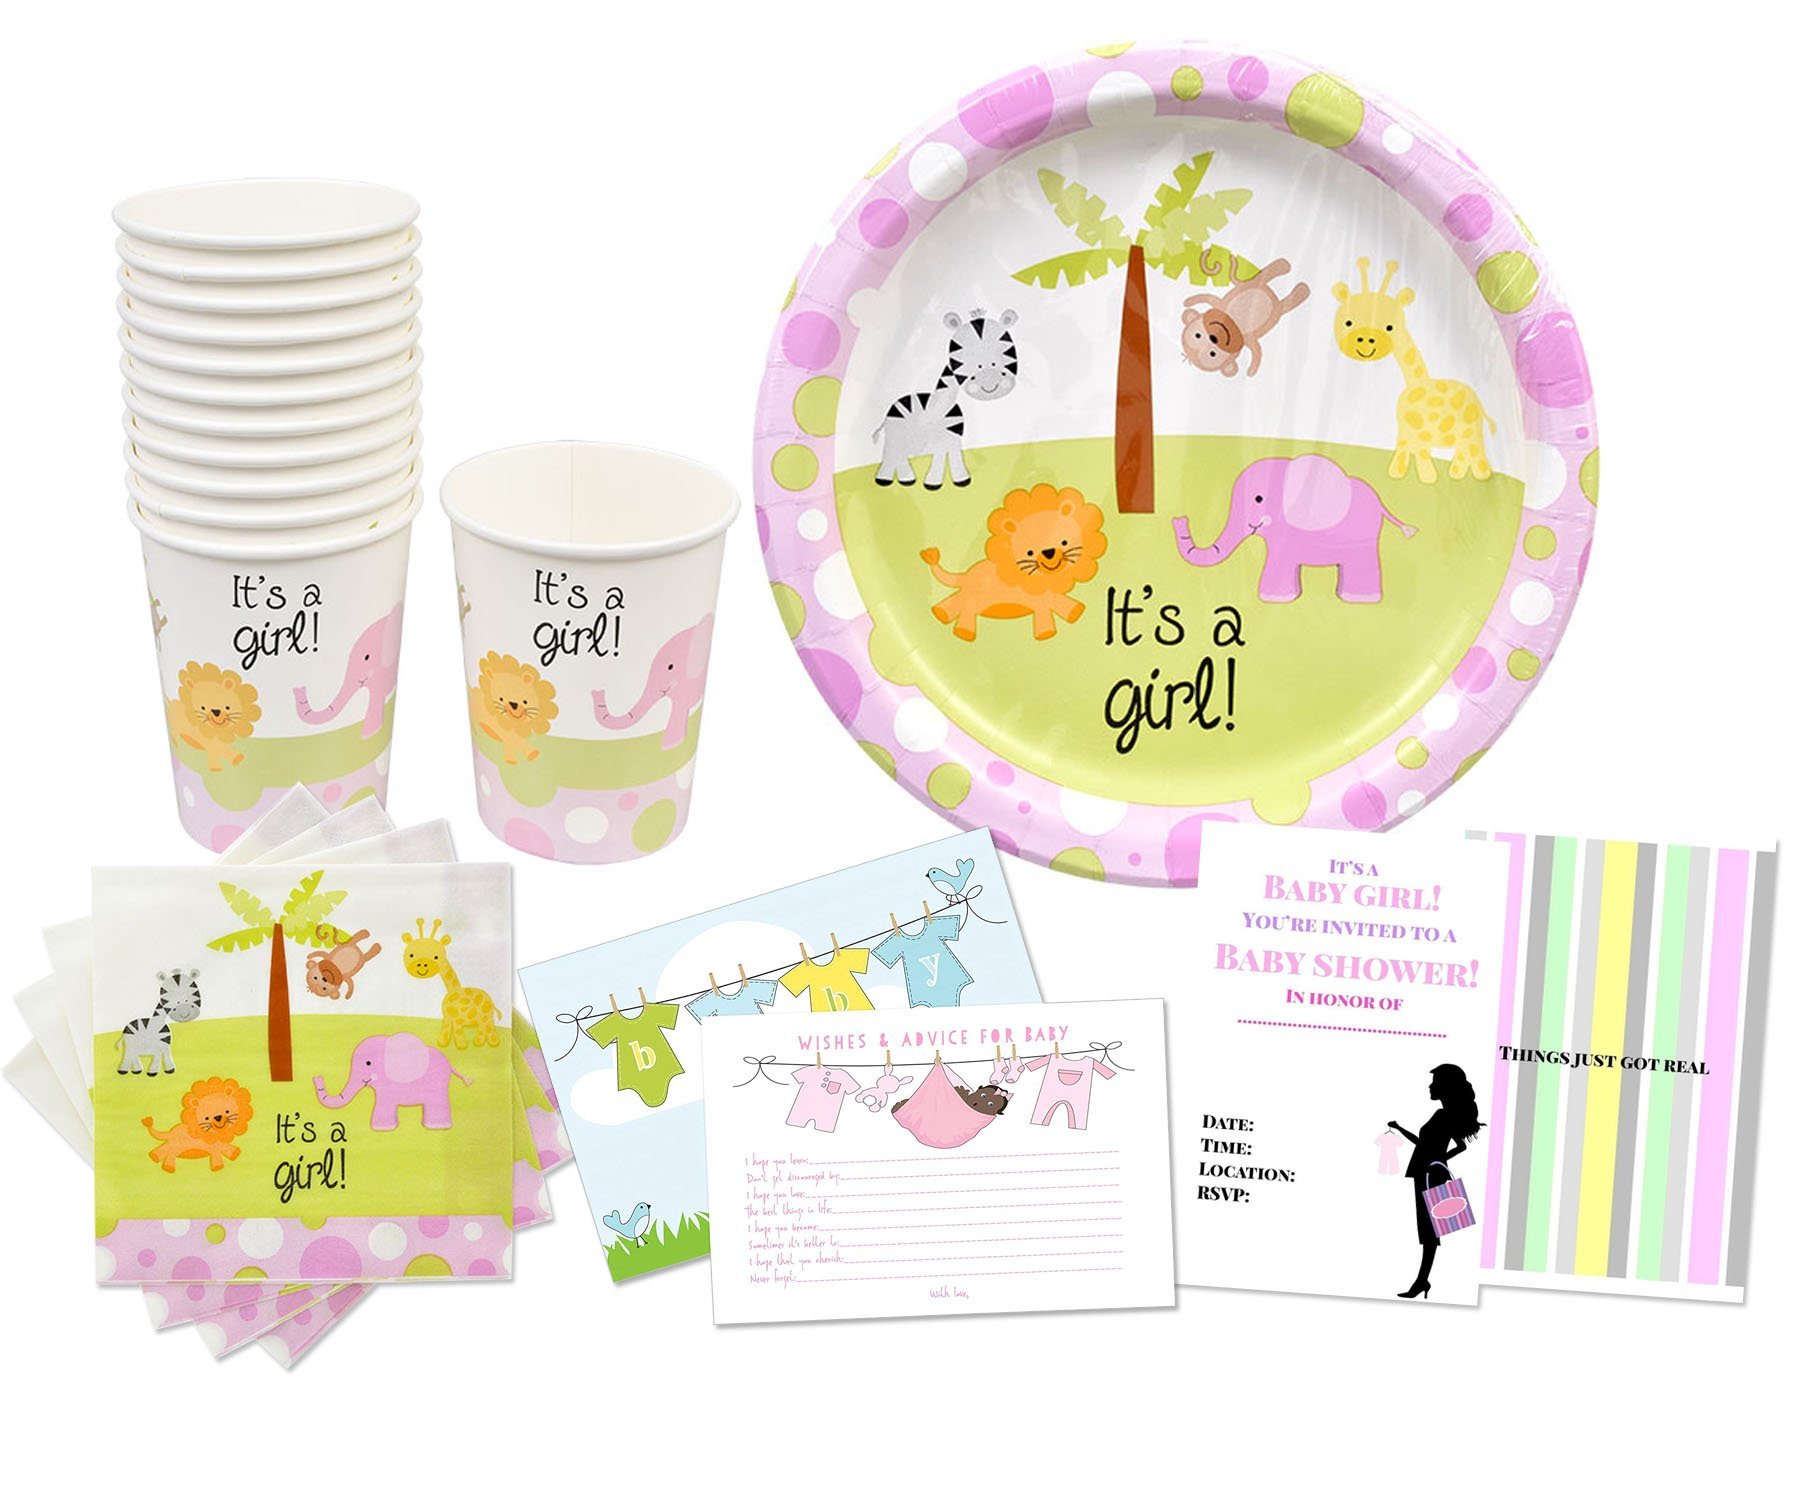 Baby Shower Party Supplies Set for 48 Guests, Baby Shower Tableware Set with Baby Shower Invitations and Baby Shower Wishes and Advice Cards (Brown Baby Girl Things)